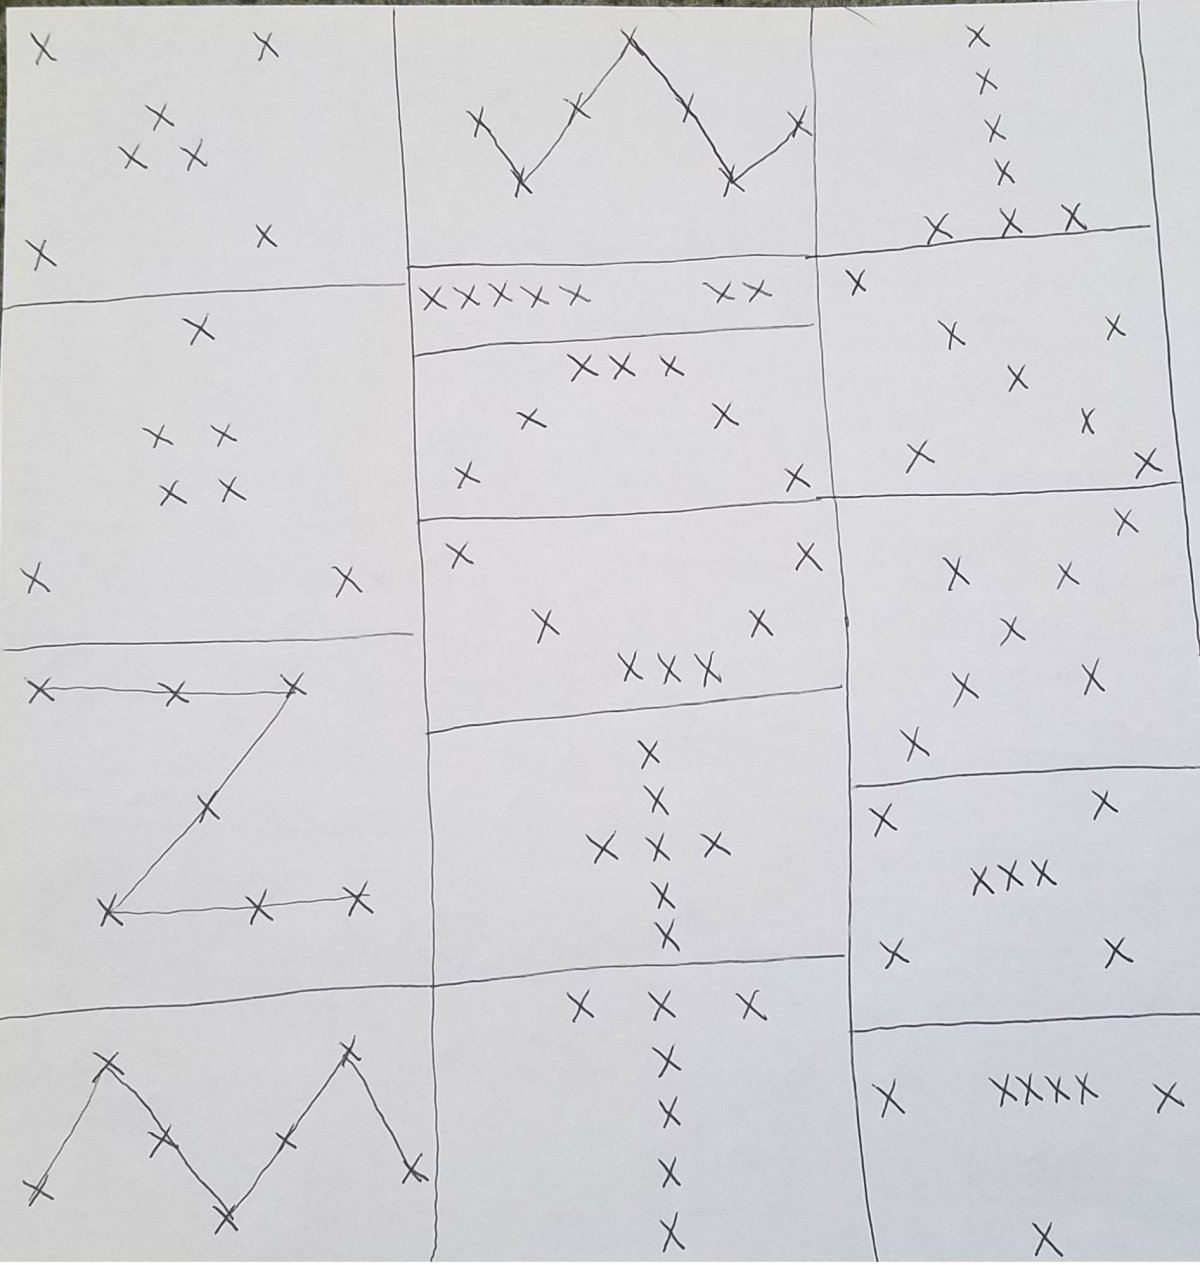 Formations for 7